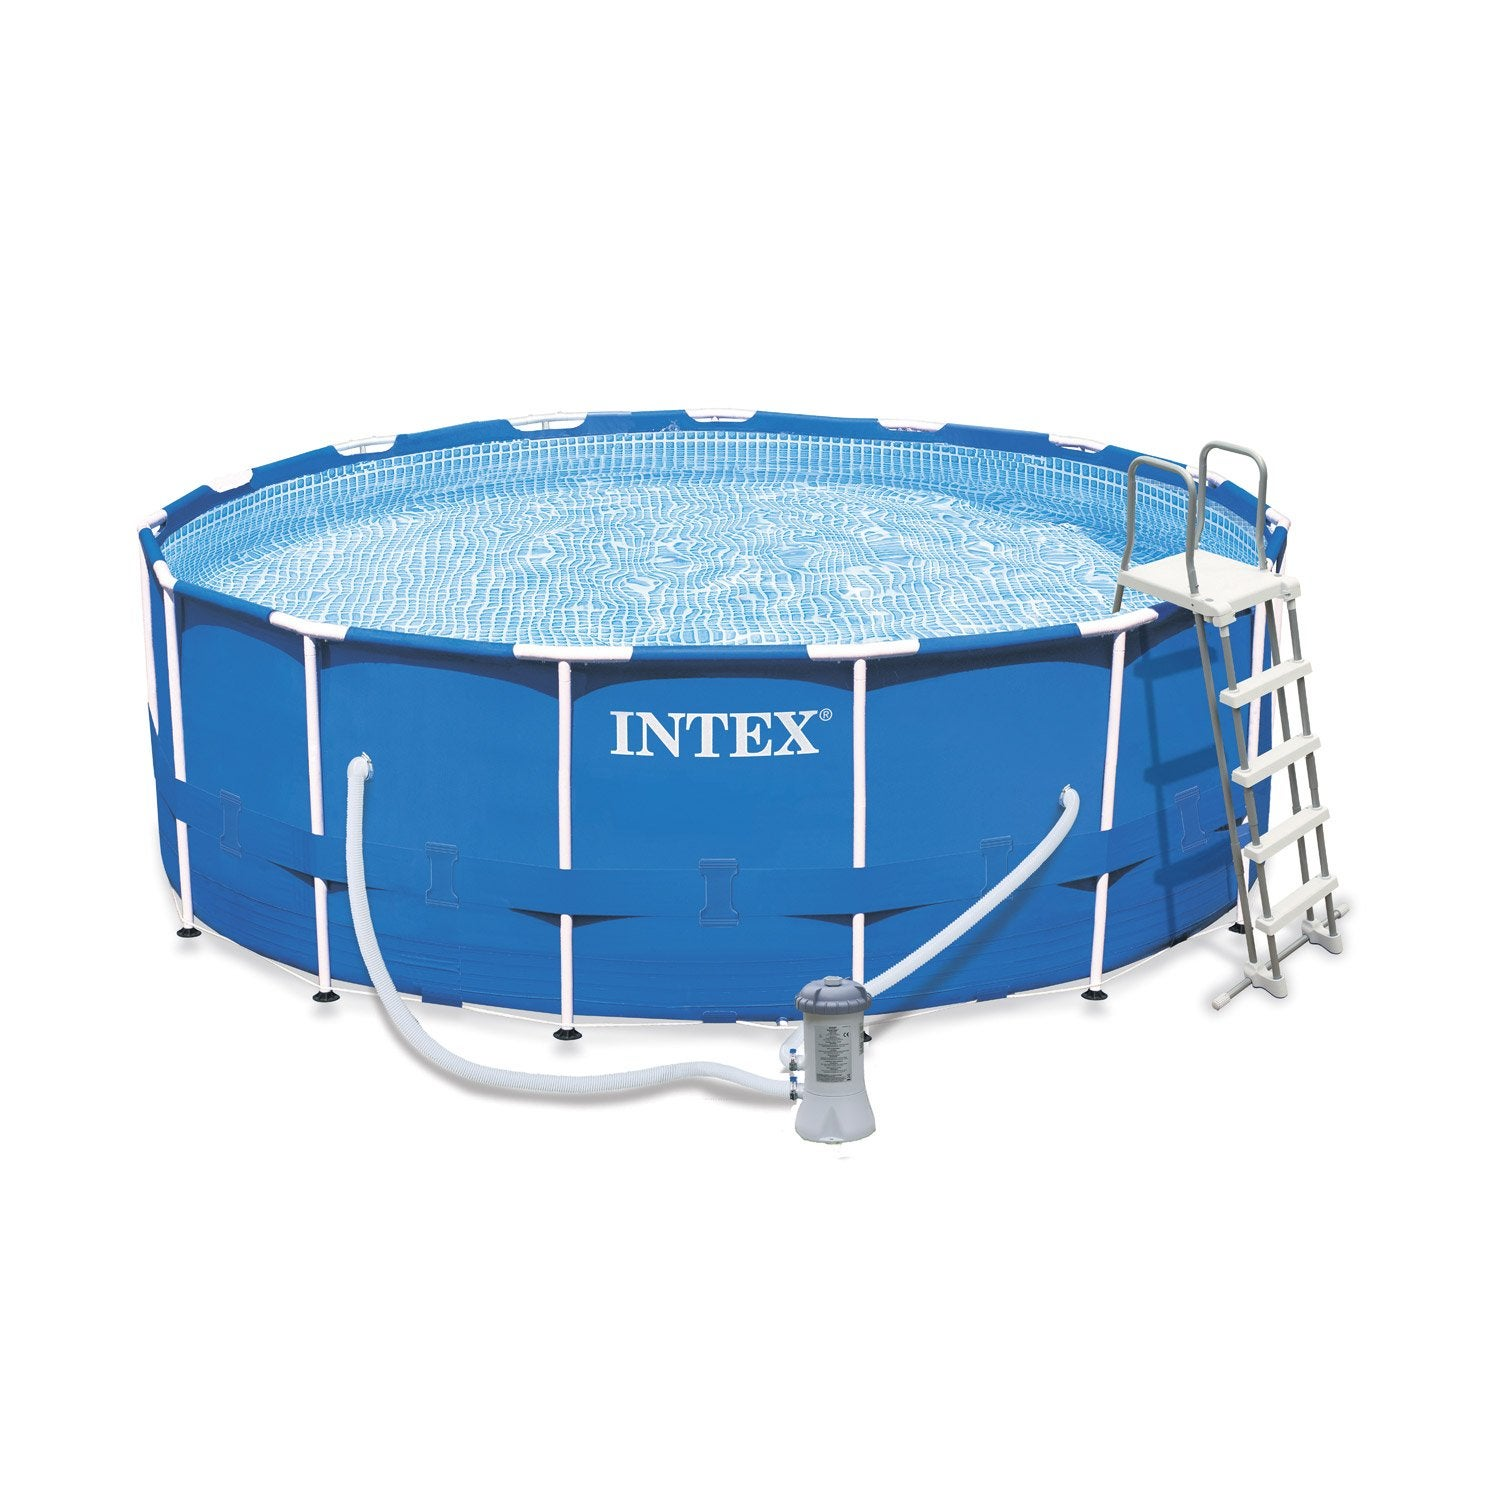 Piscine hors sol autoportante tubulaire metal frame intex for Piscine hors sol hauteur 1m50